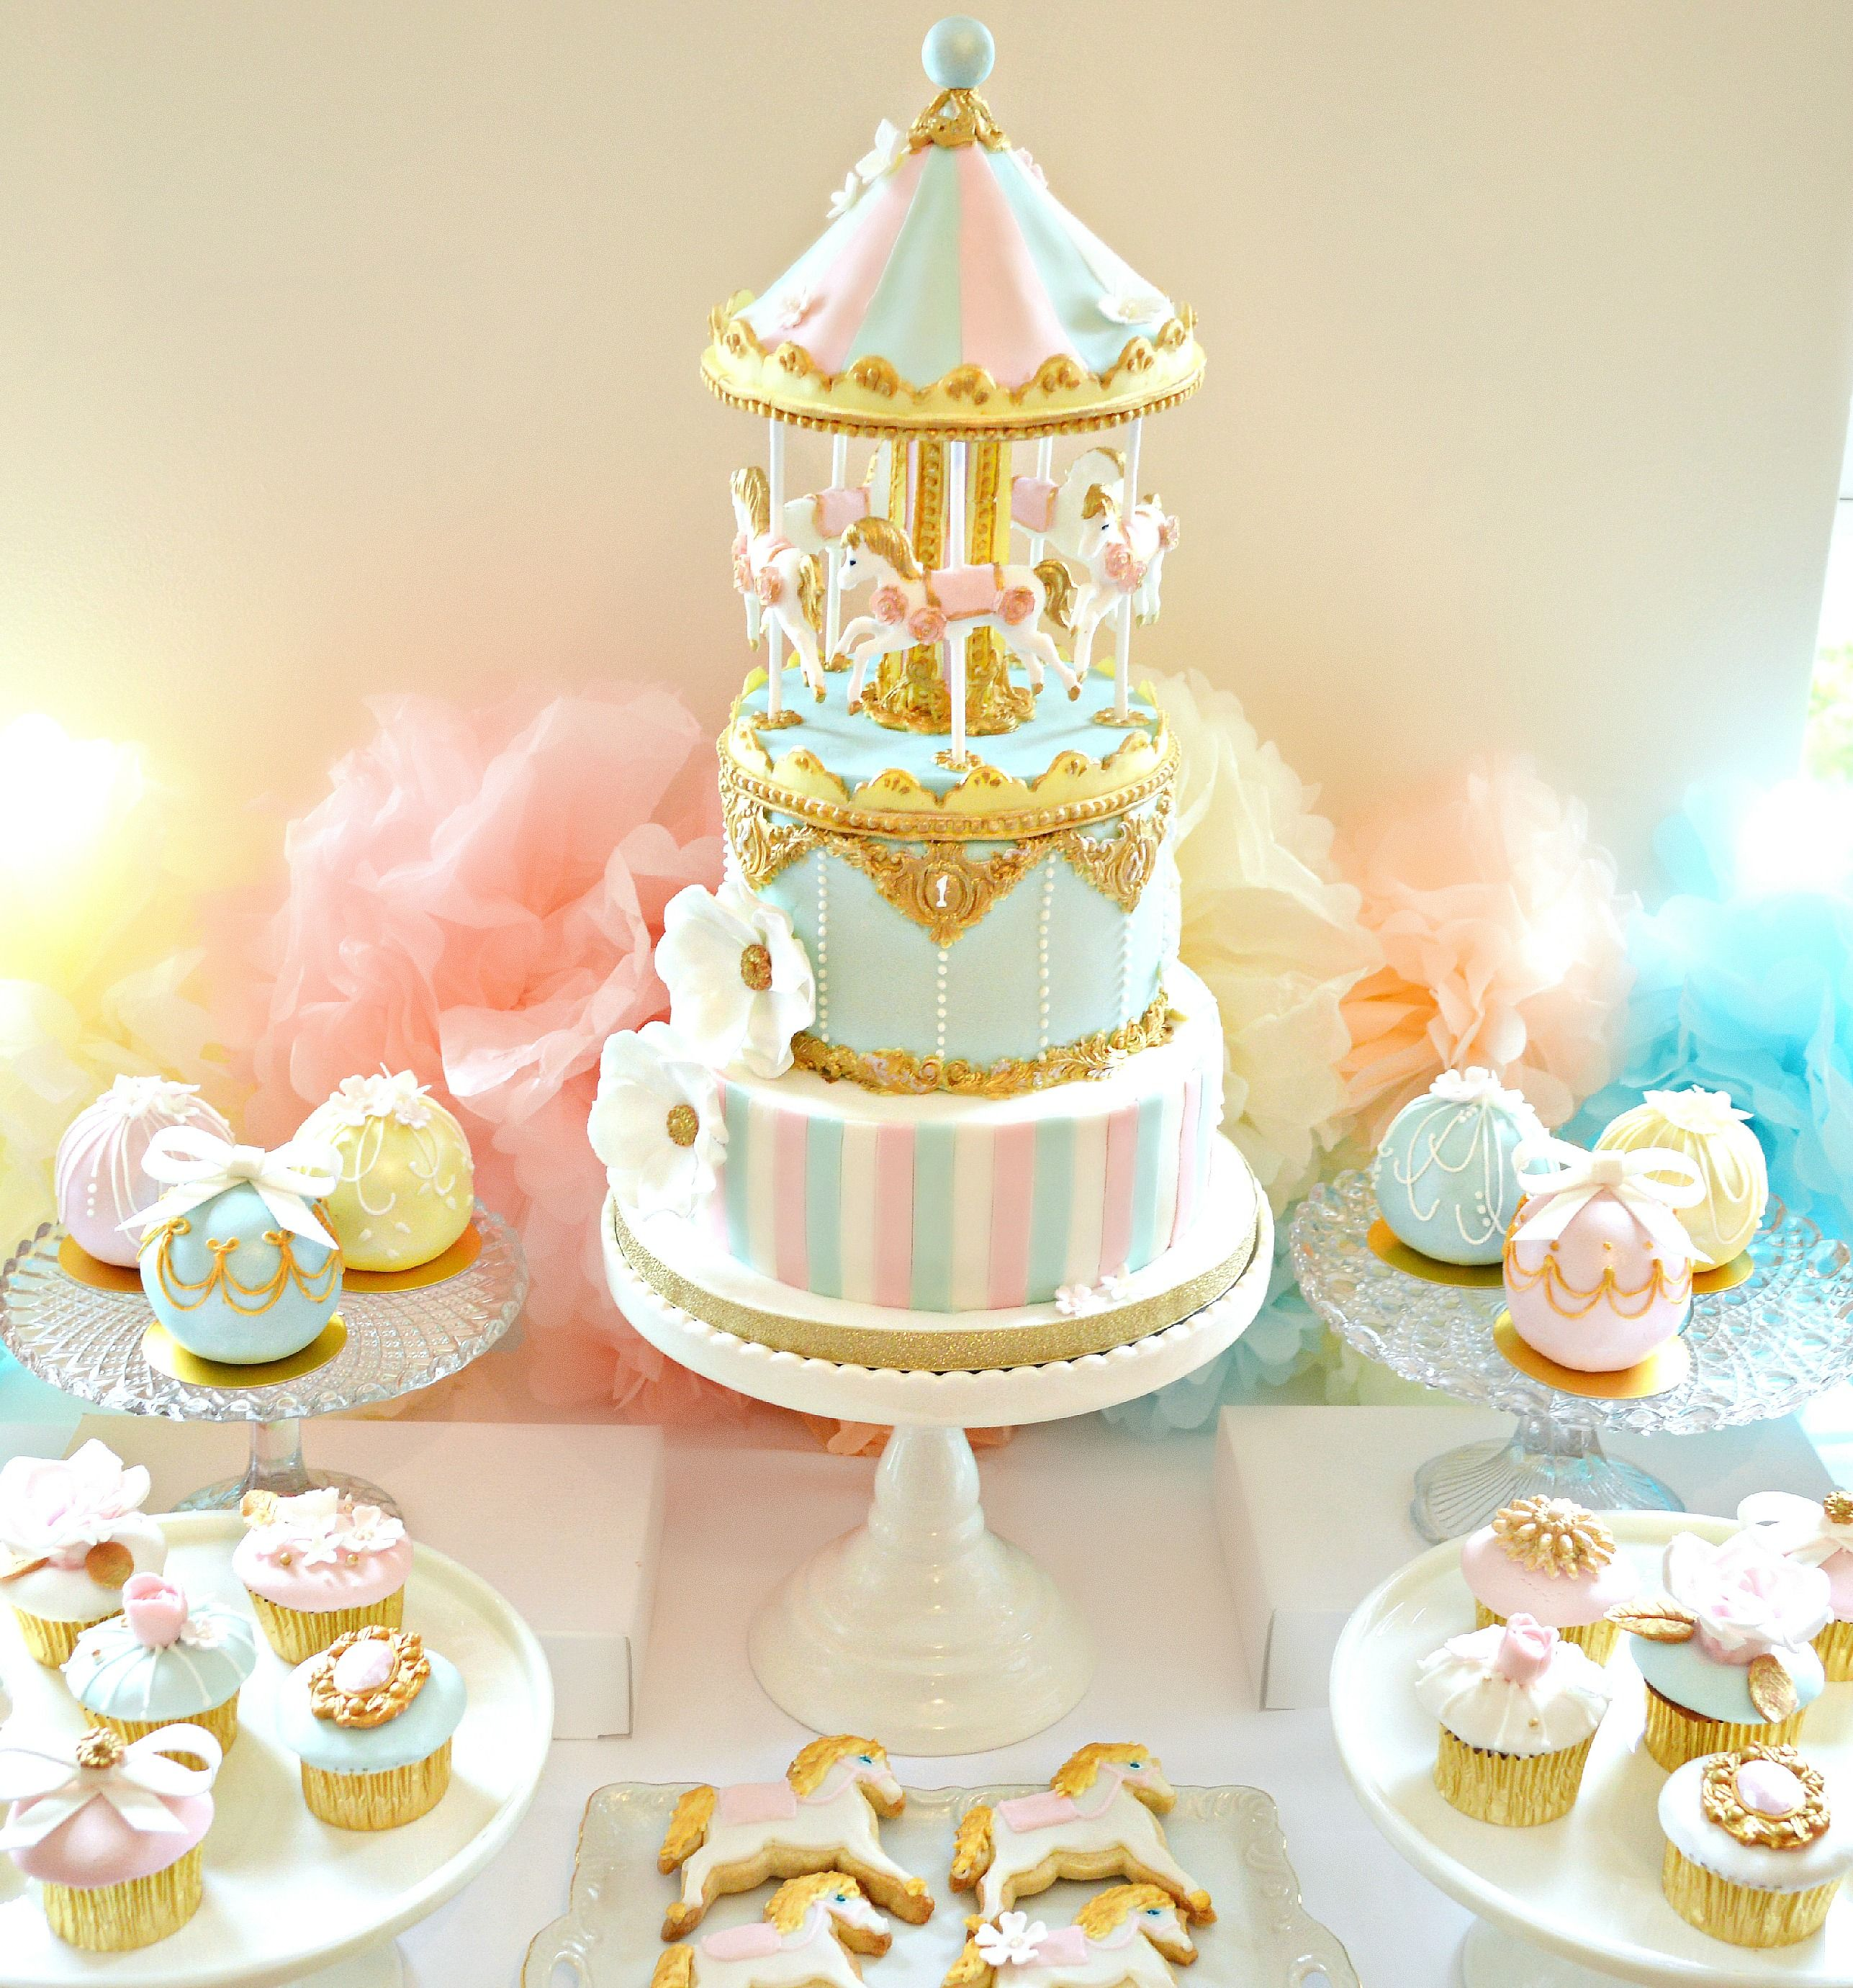 Pink Blue And Gold Carousel Birthday Cake Cupcakes And Cookies Dessert Cake Table Cherie